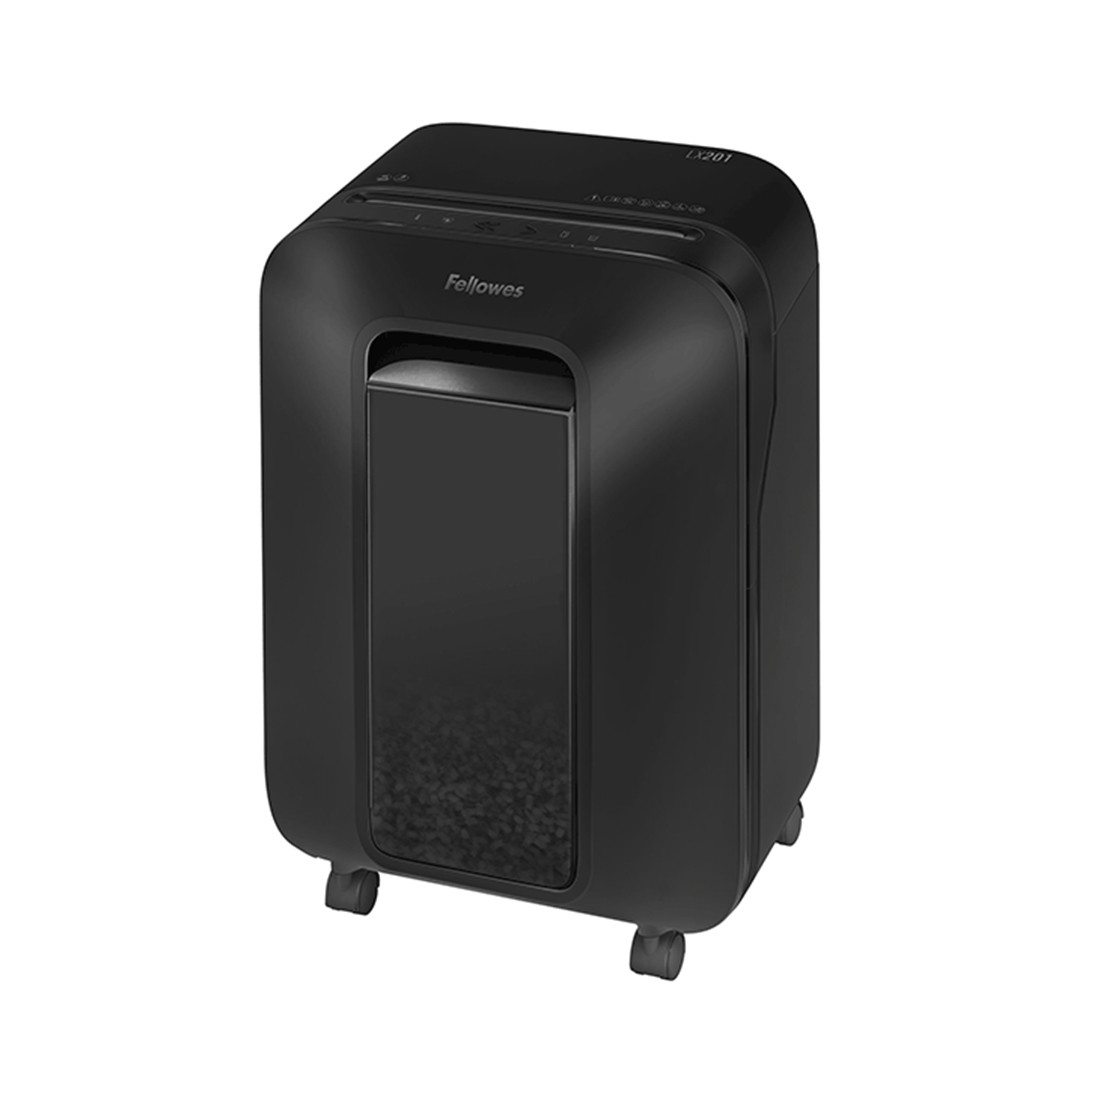 Шредер Fellowes MicroShred LX201